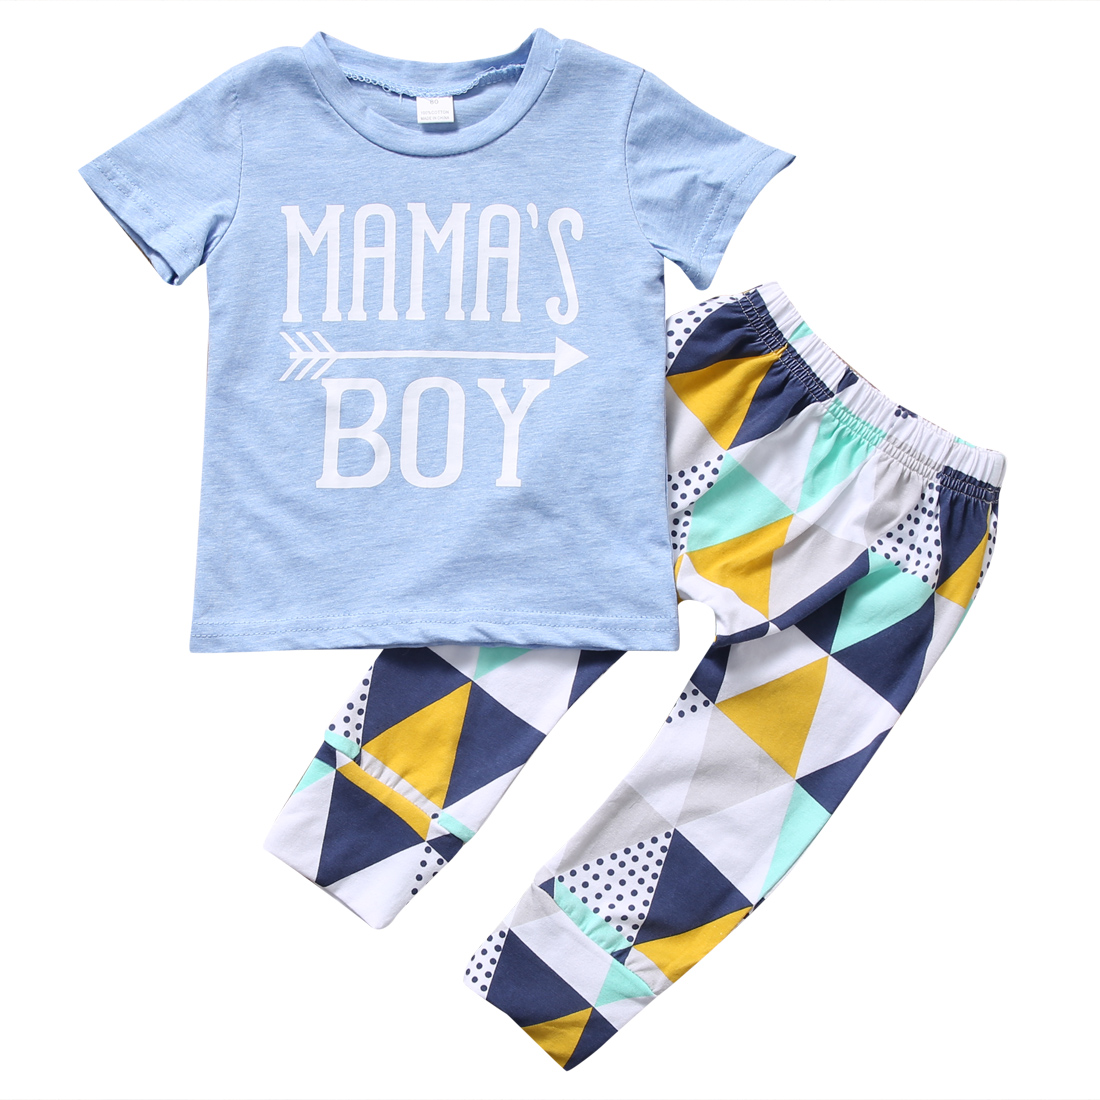 2PCS Newborn Baby Boys Outfits T-shirt Tops+ Pants Sets Clothes Summer Short Sleeve Mama Boy Print Tees Casual Clothes newborn kids baby boy summer clothes set t shirt tops pants outfits boys sets 2pcs 0 3y camouflage